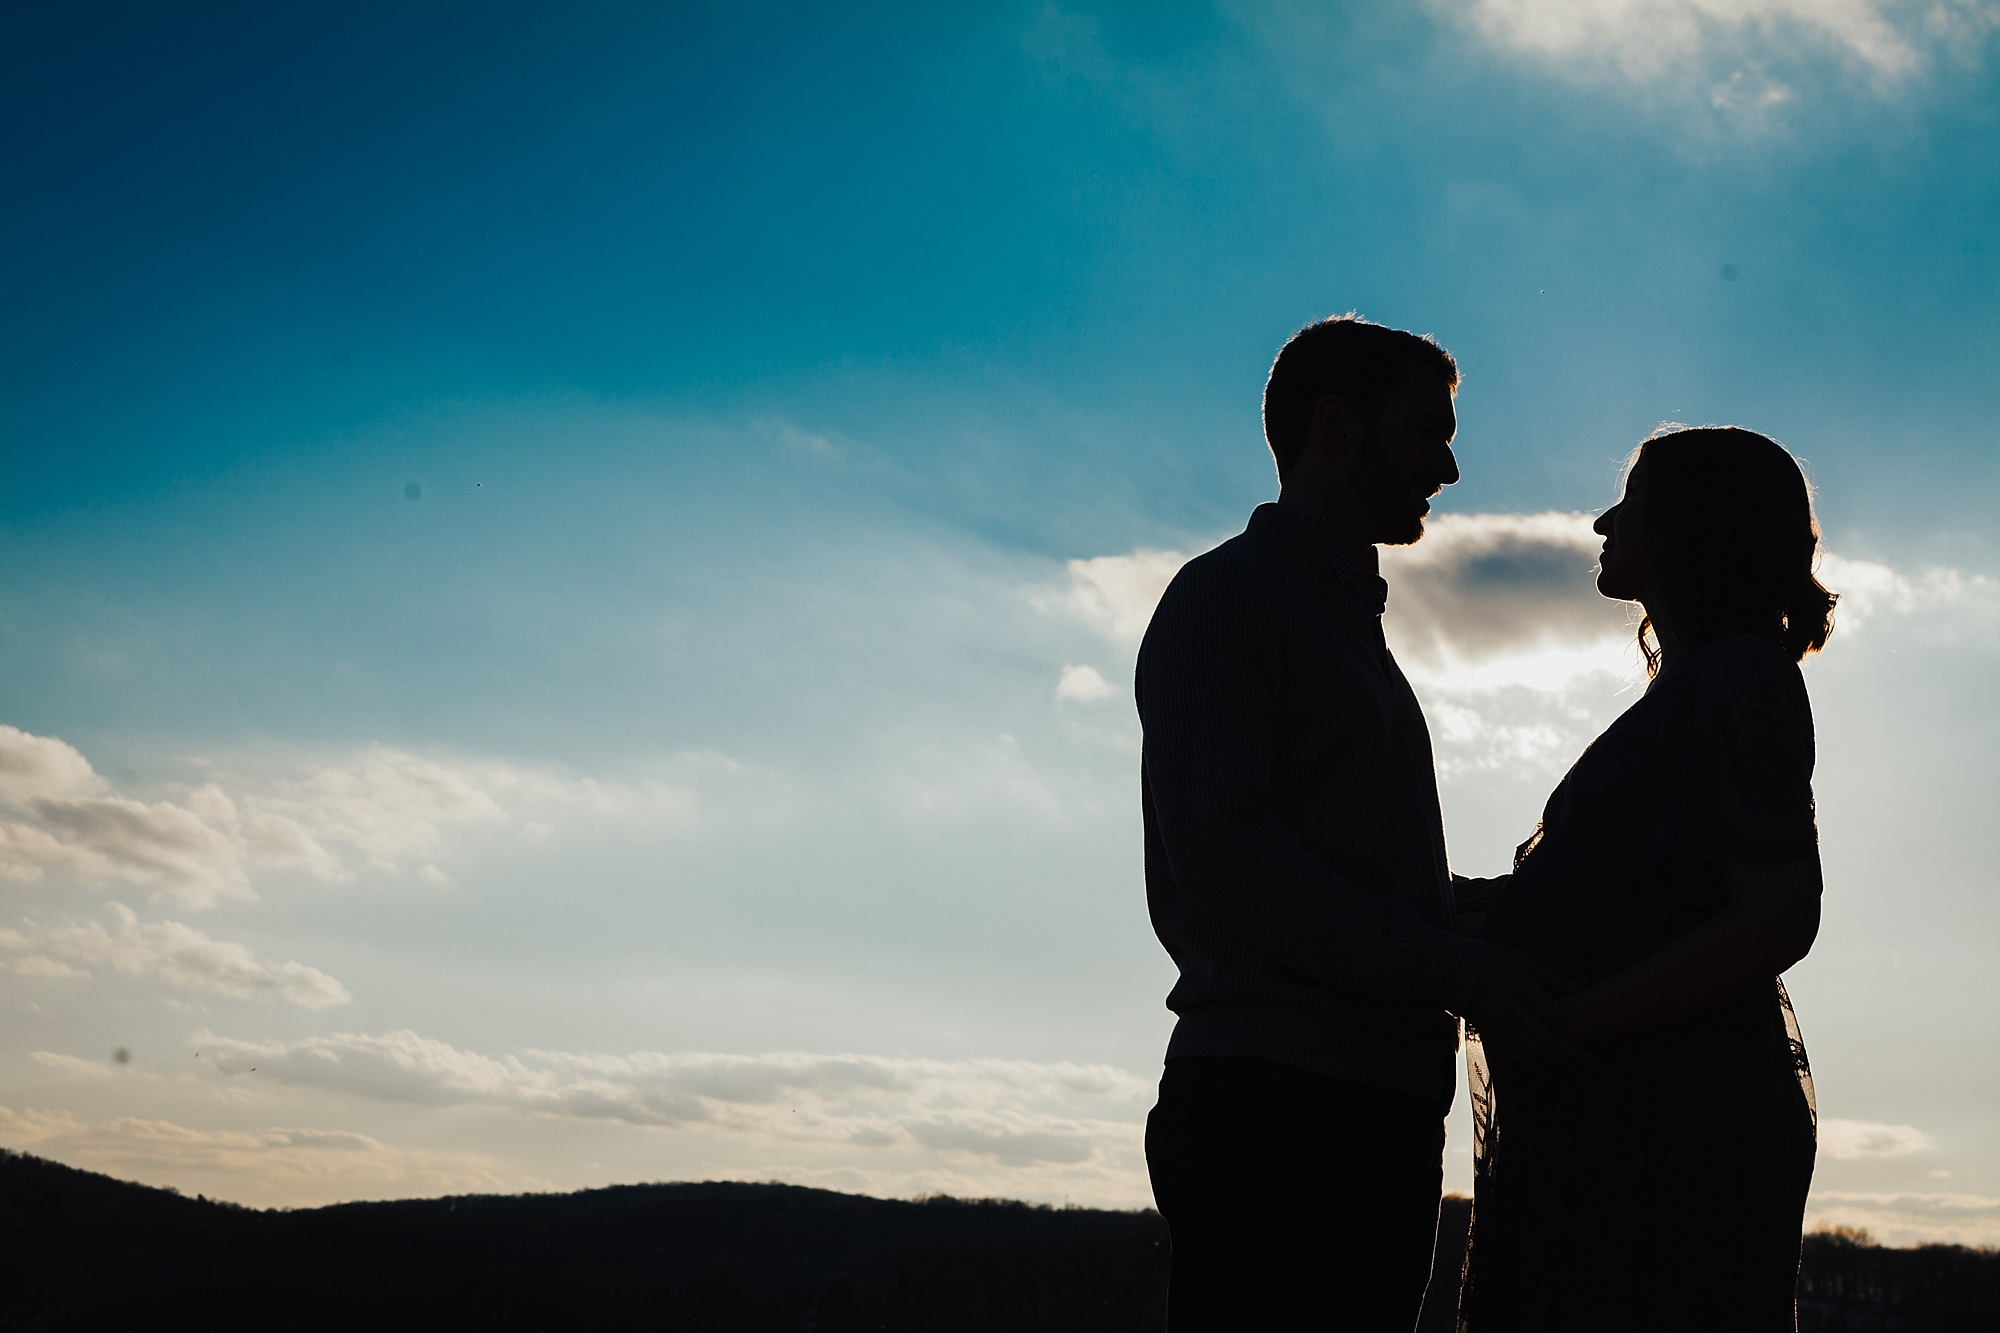 Joe_Mac_Creative_Maternity_Wedding_Engagements_Photography_Philadelphia_Valley_Forge__0048.jpg